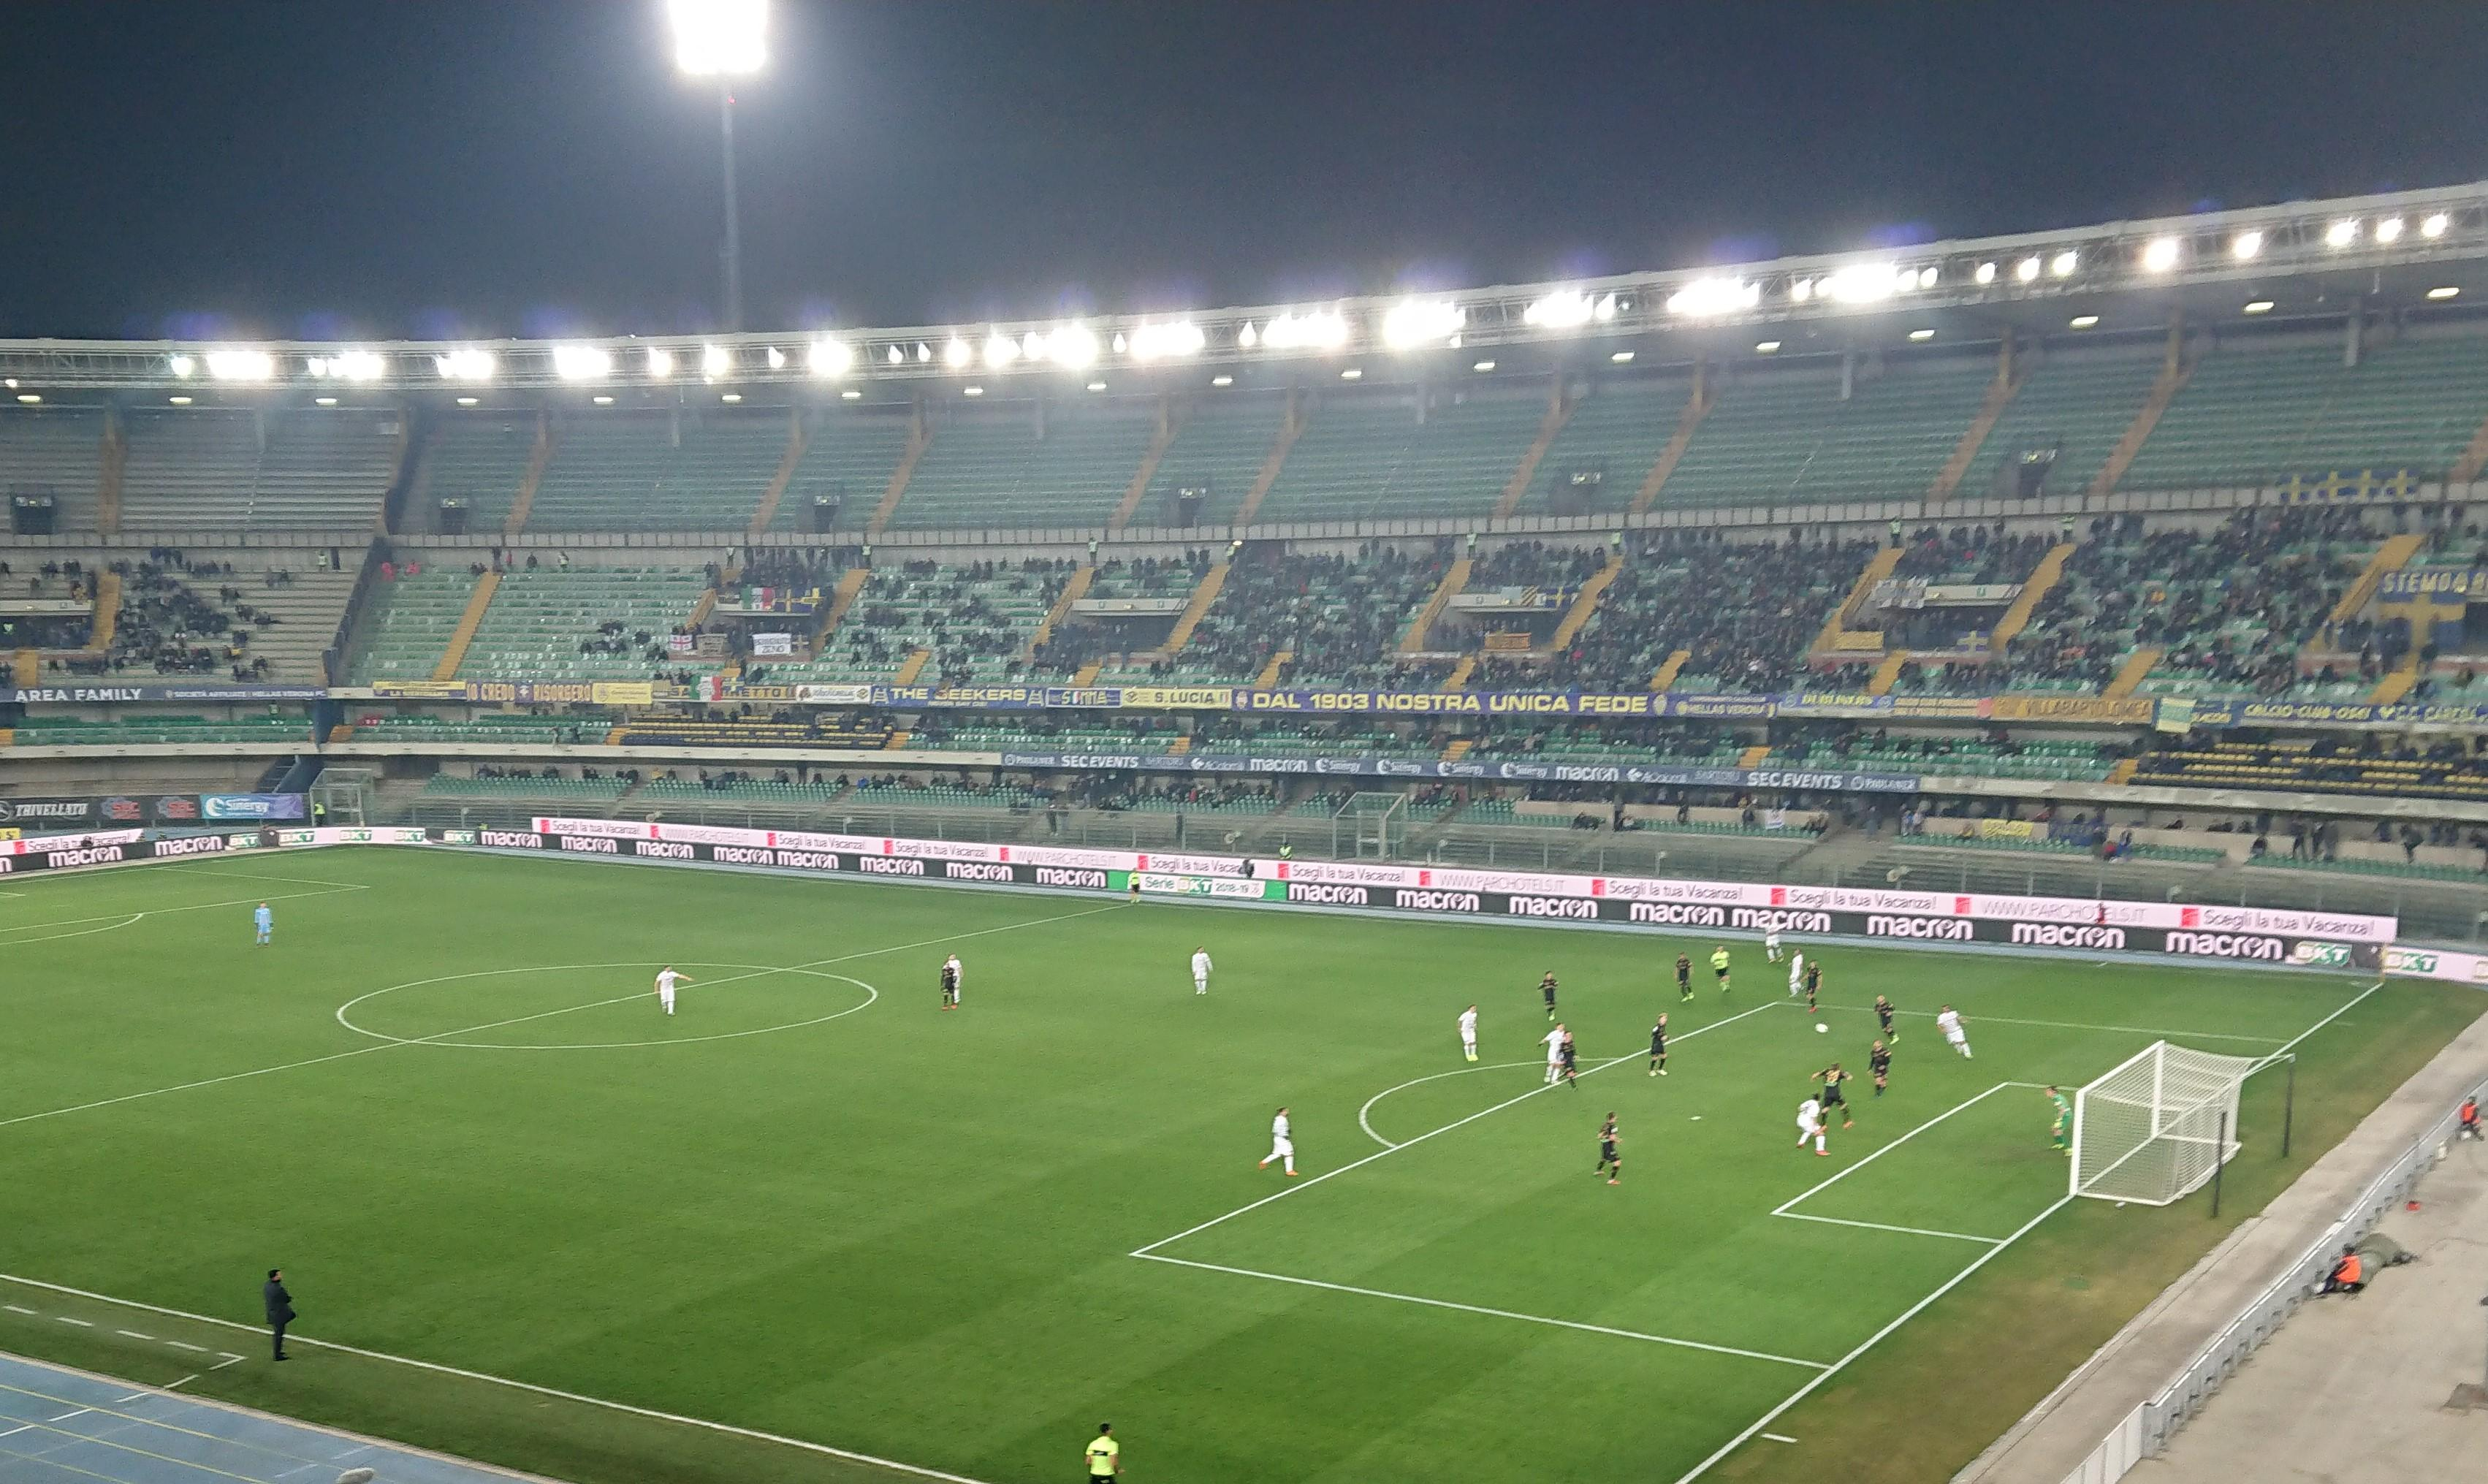 Under the lights in Verona